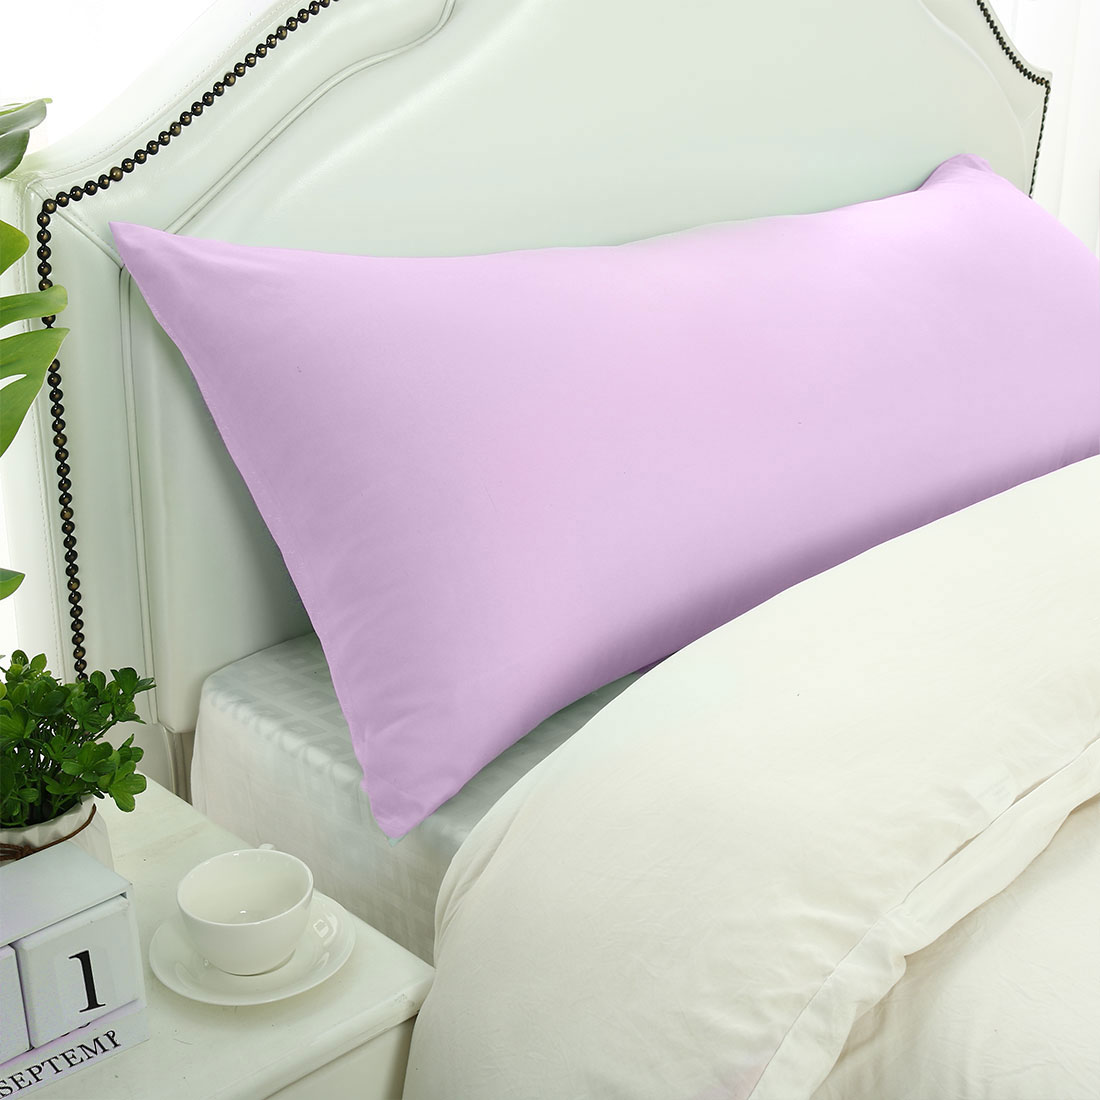 """Body Pillow Cases 1800 Microfiber Soft Bolster Pillow Covers Violet 20x60"""""""